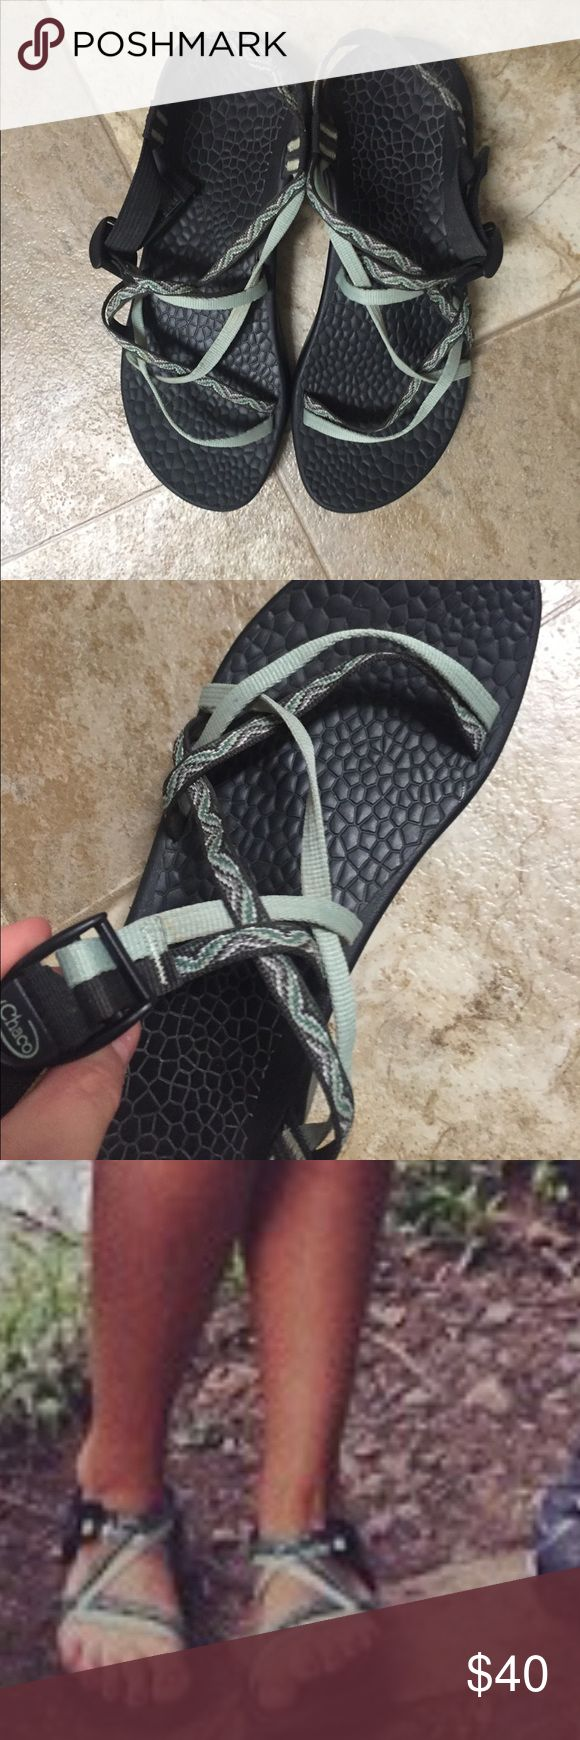 Black Chaco with green/light grey straps Only worn once!!! Perfect summer sandal Chacos Shoes Sandals